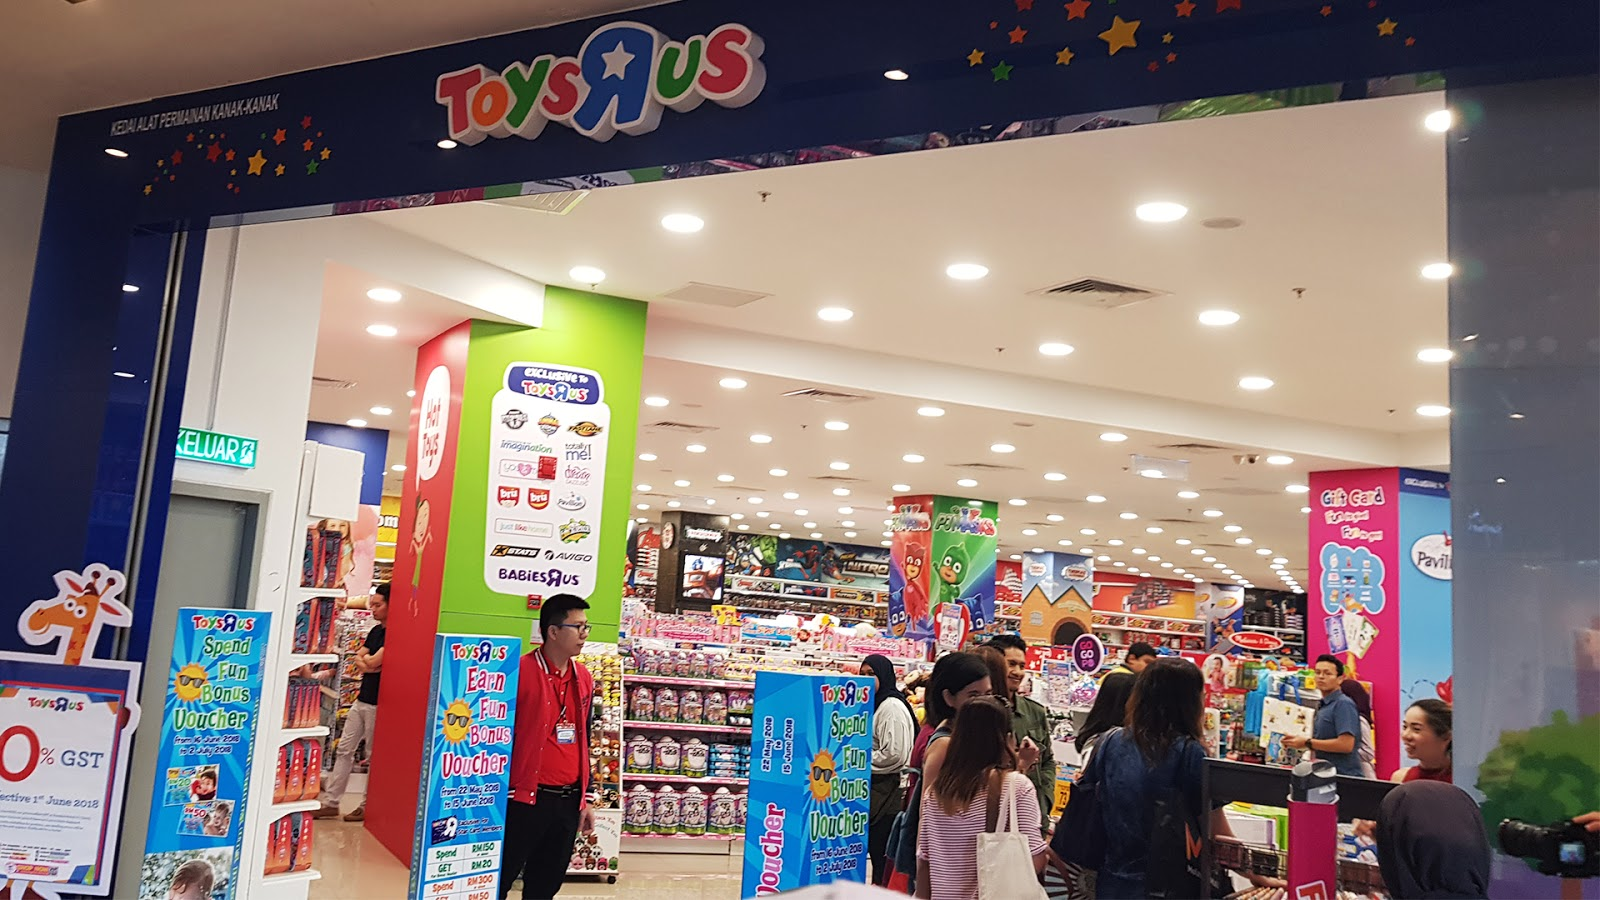 Chapter 7 First Visit To Melawati Mall Toys R Us Mph Joanne